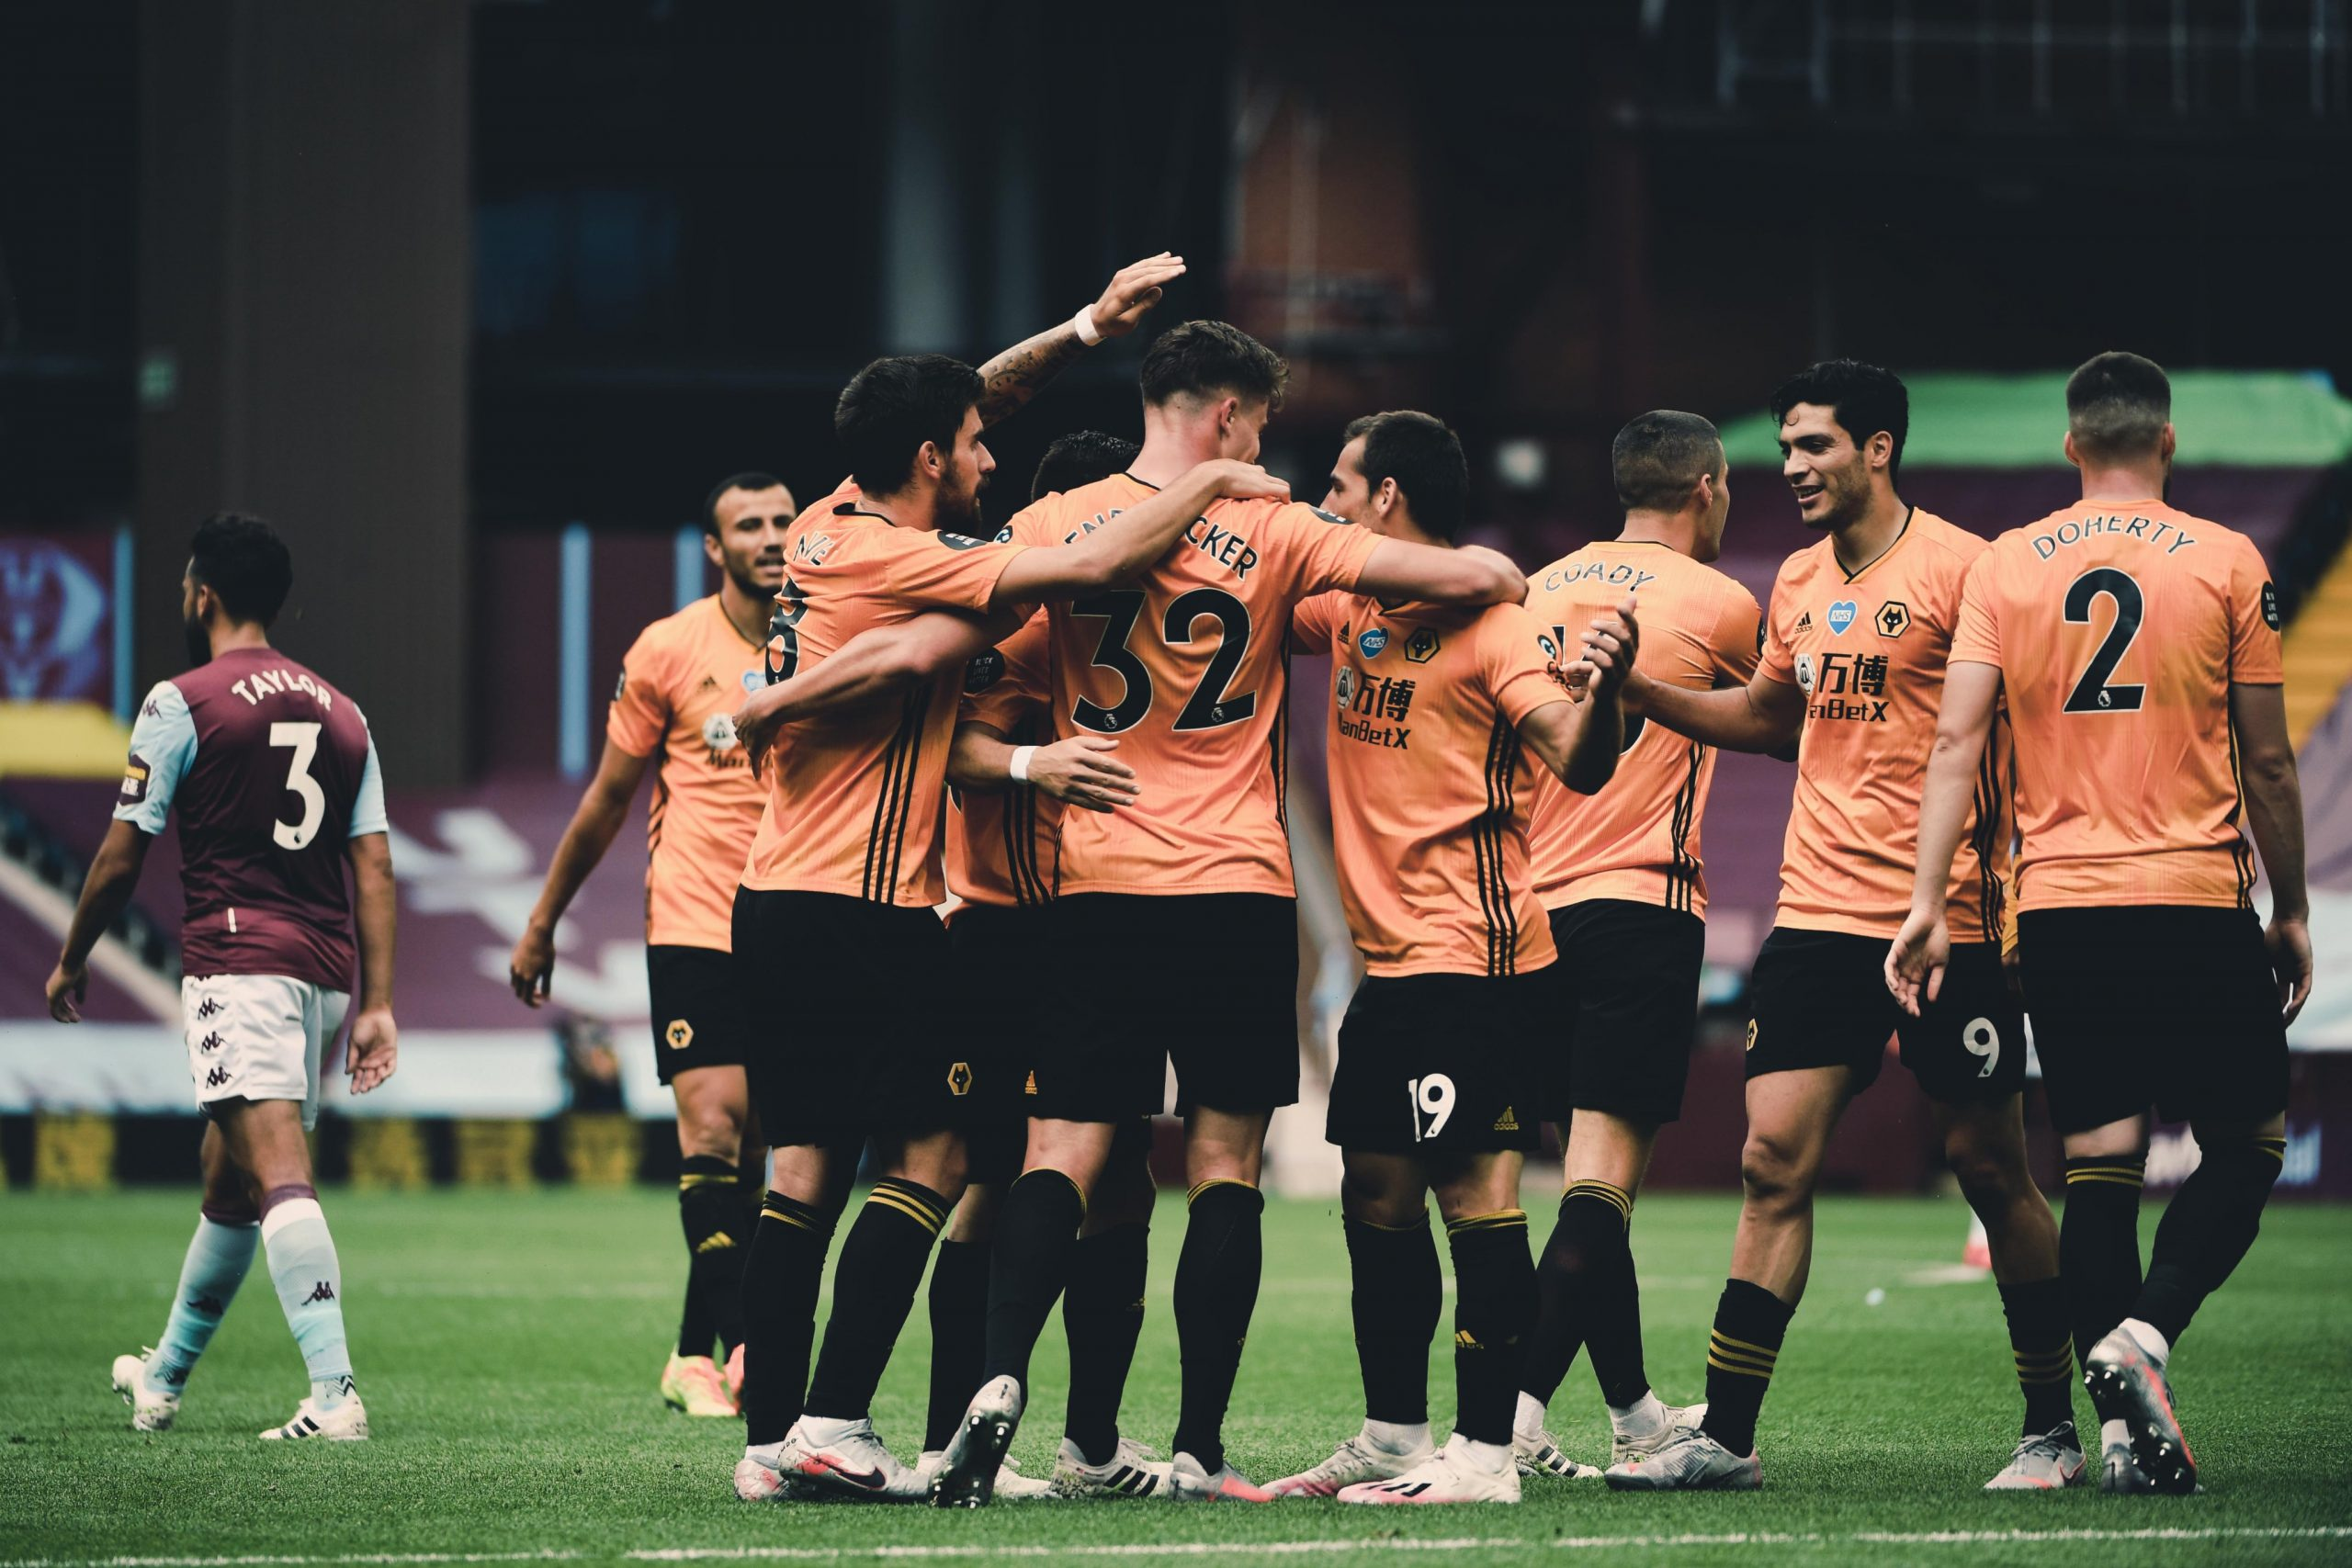 Premier League: Wolves Boost Champions League Qualification Hopes With Win Vs Villa